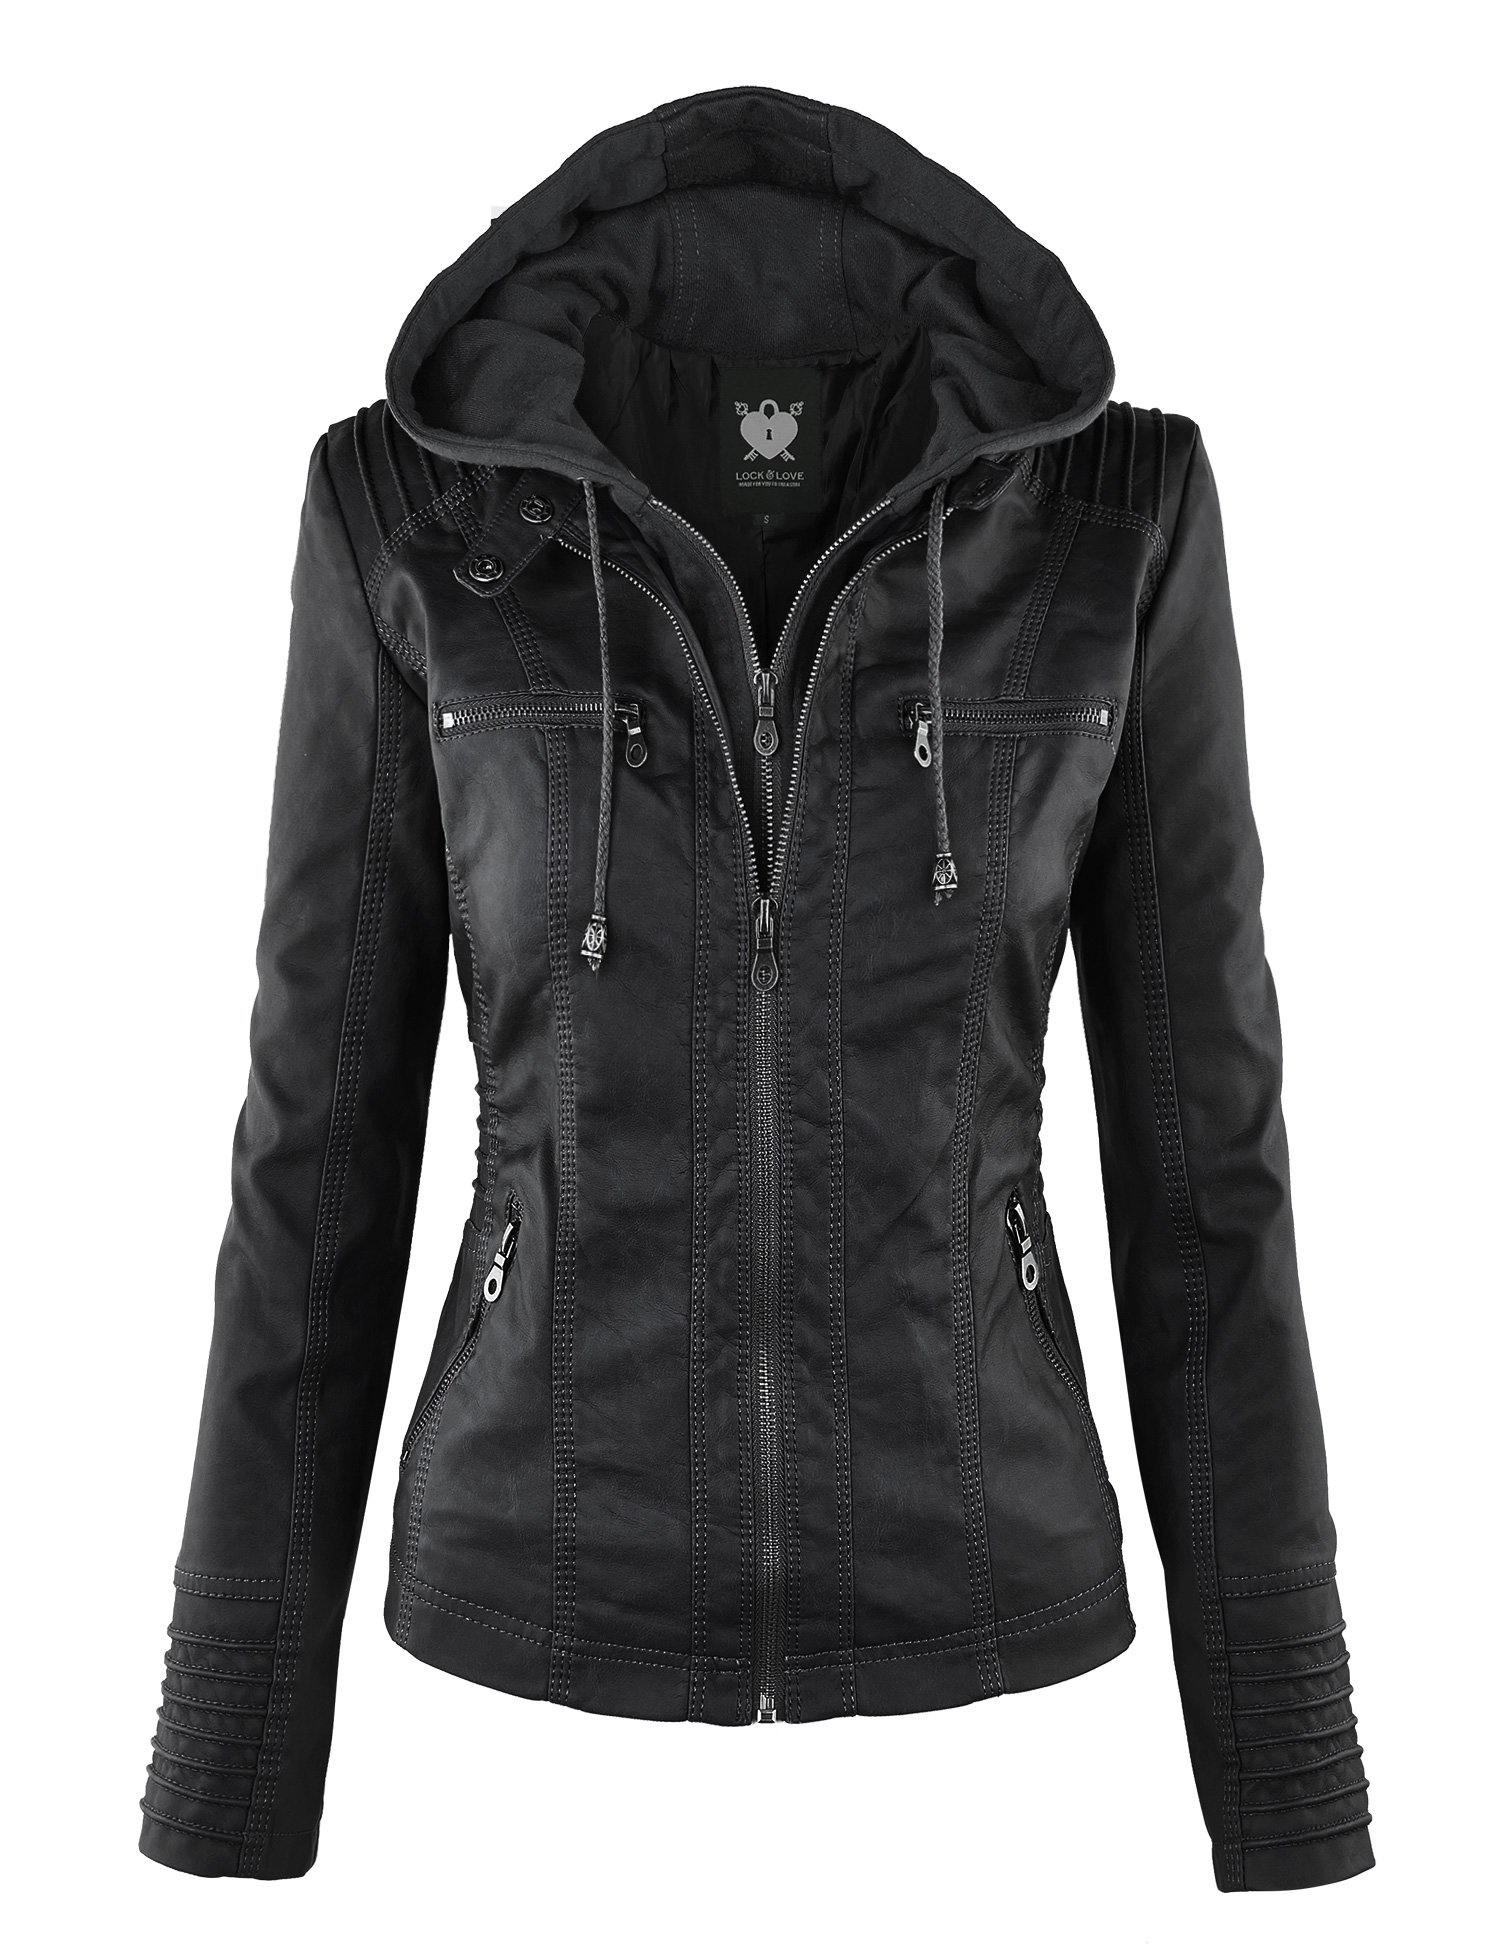 Lock and Love LL WJC663 Womens Removable Hoodie Motorcyle Jacket L Black by Lock and Love